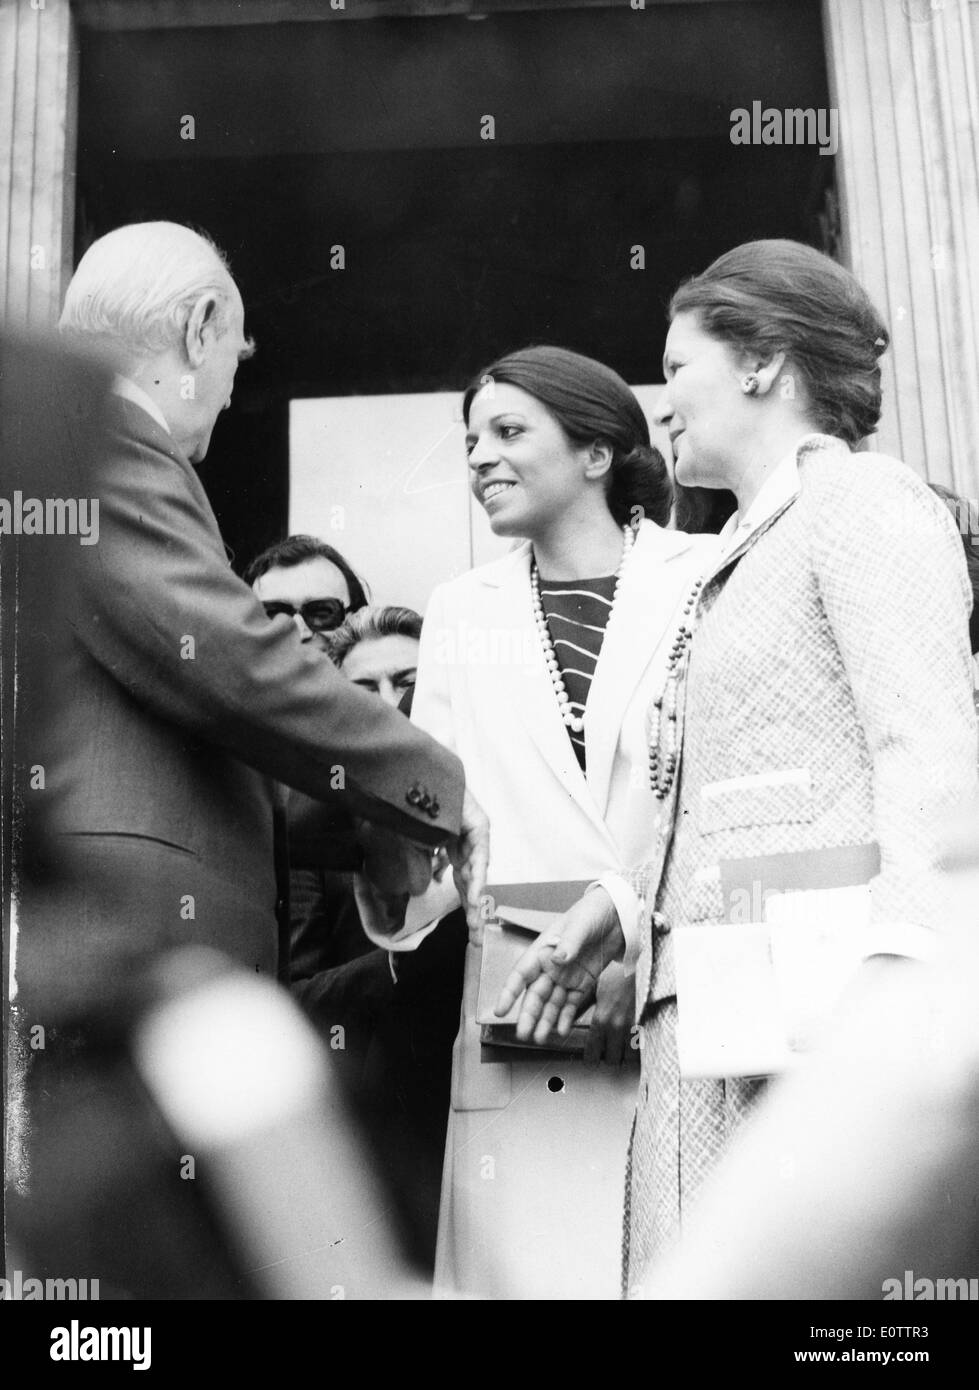 Christina Onassis greets a colleague - Stock Image